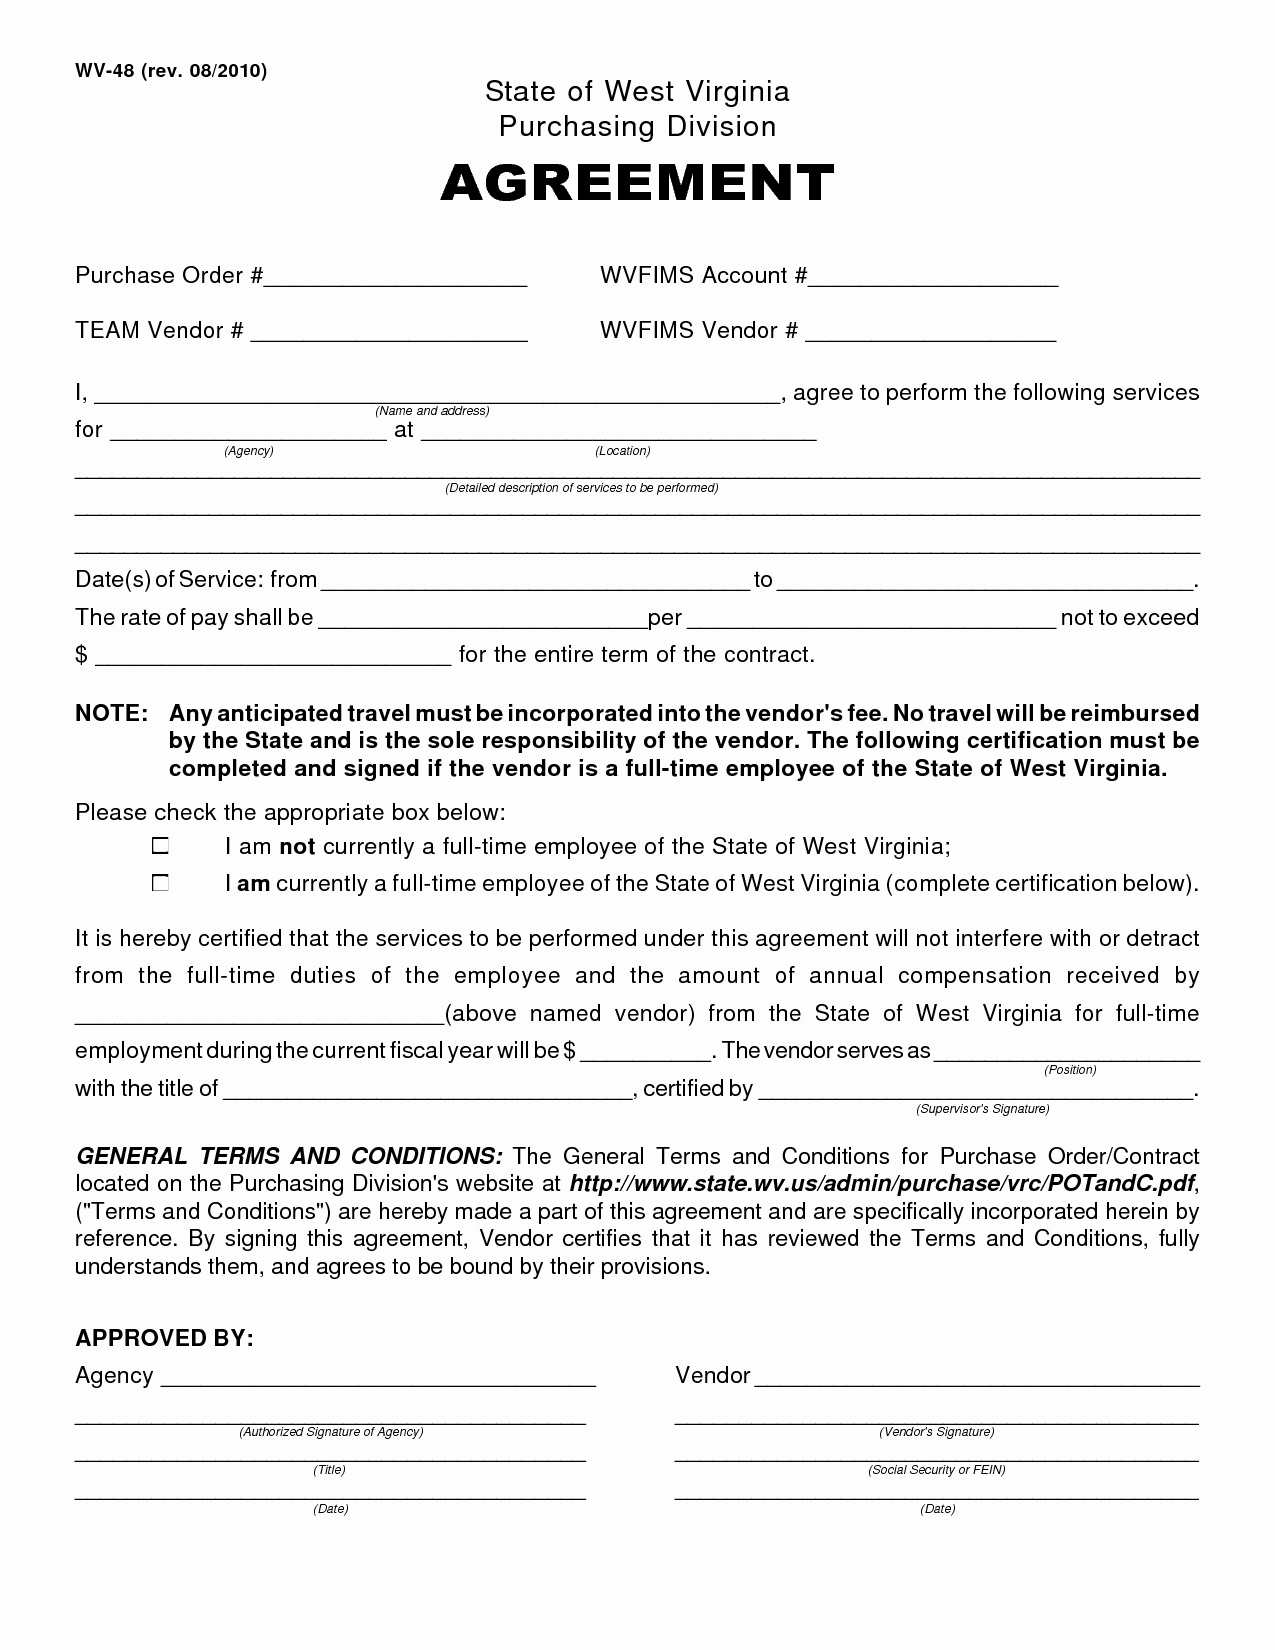 House Buying Contract Template Unique Template for Purchase Agreement Portablegasgrillweber